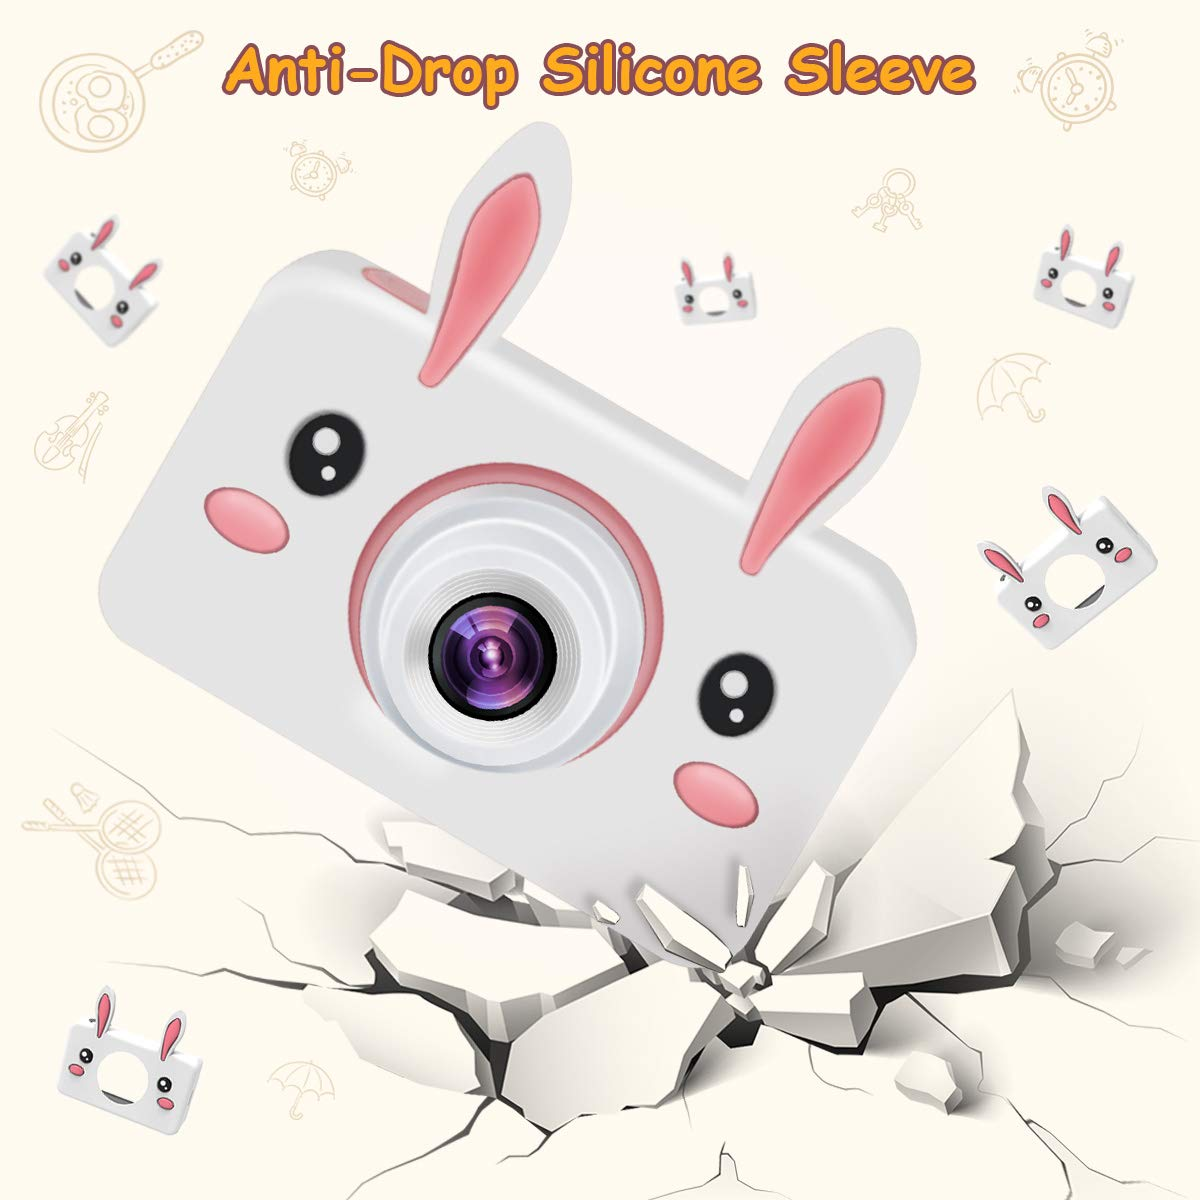 Kids Camera Gifts for Girls, 2'' IPS Screen 8.0MP Shockproof Mini Child Video Camera Camcorder for Age 3 - 14 Kids with Soft Rabbit Silicone Cover - Pink (16GB Memory Card Included) by AIXPI (Image #7)